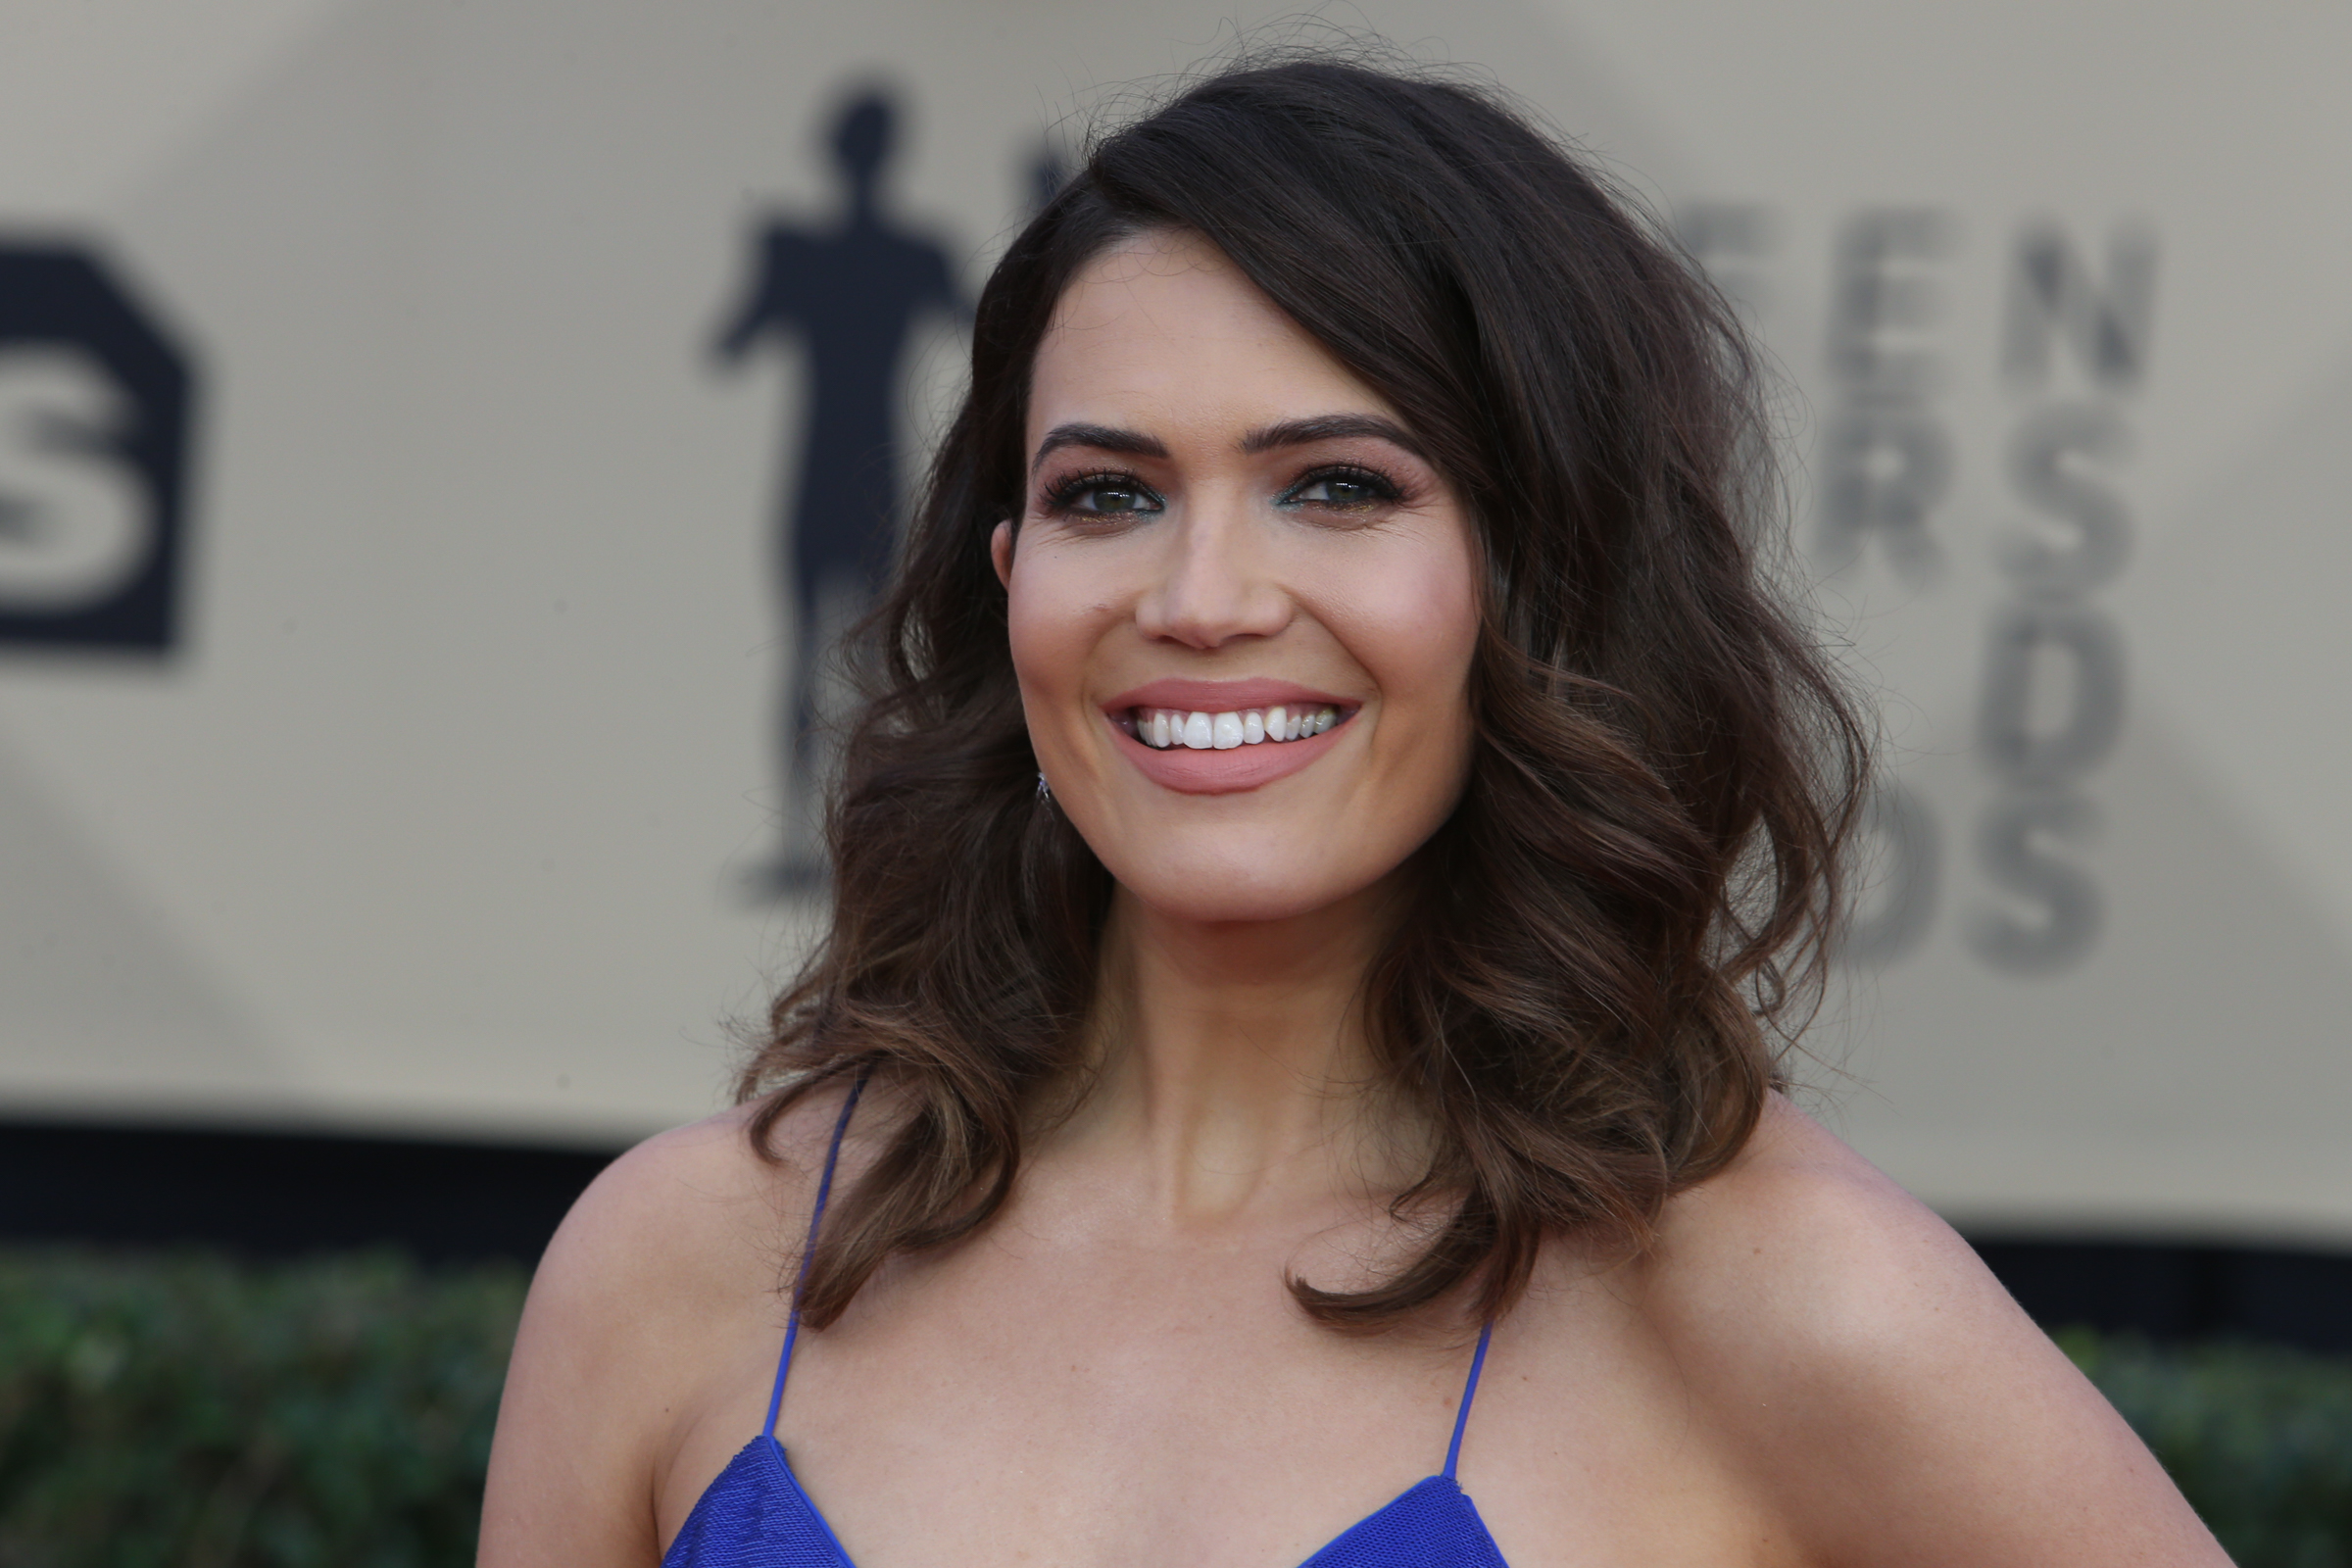 Celebrating a personal milestone in Mandy Moore's life—turning 34!—here are 15 reasons why we are unconditionally and irrevocably in love with the beautiful and talented Mandy Moore. (Photo: WENN)